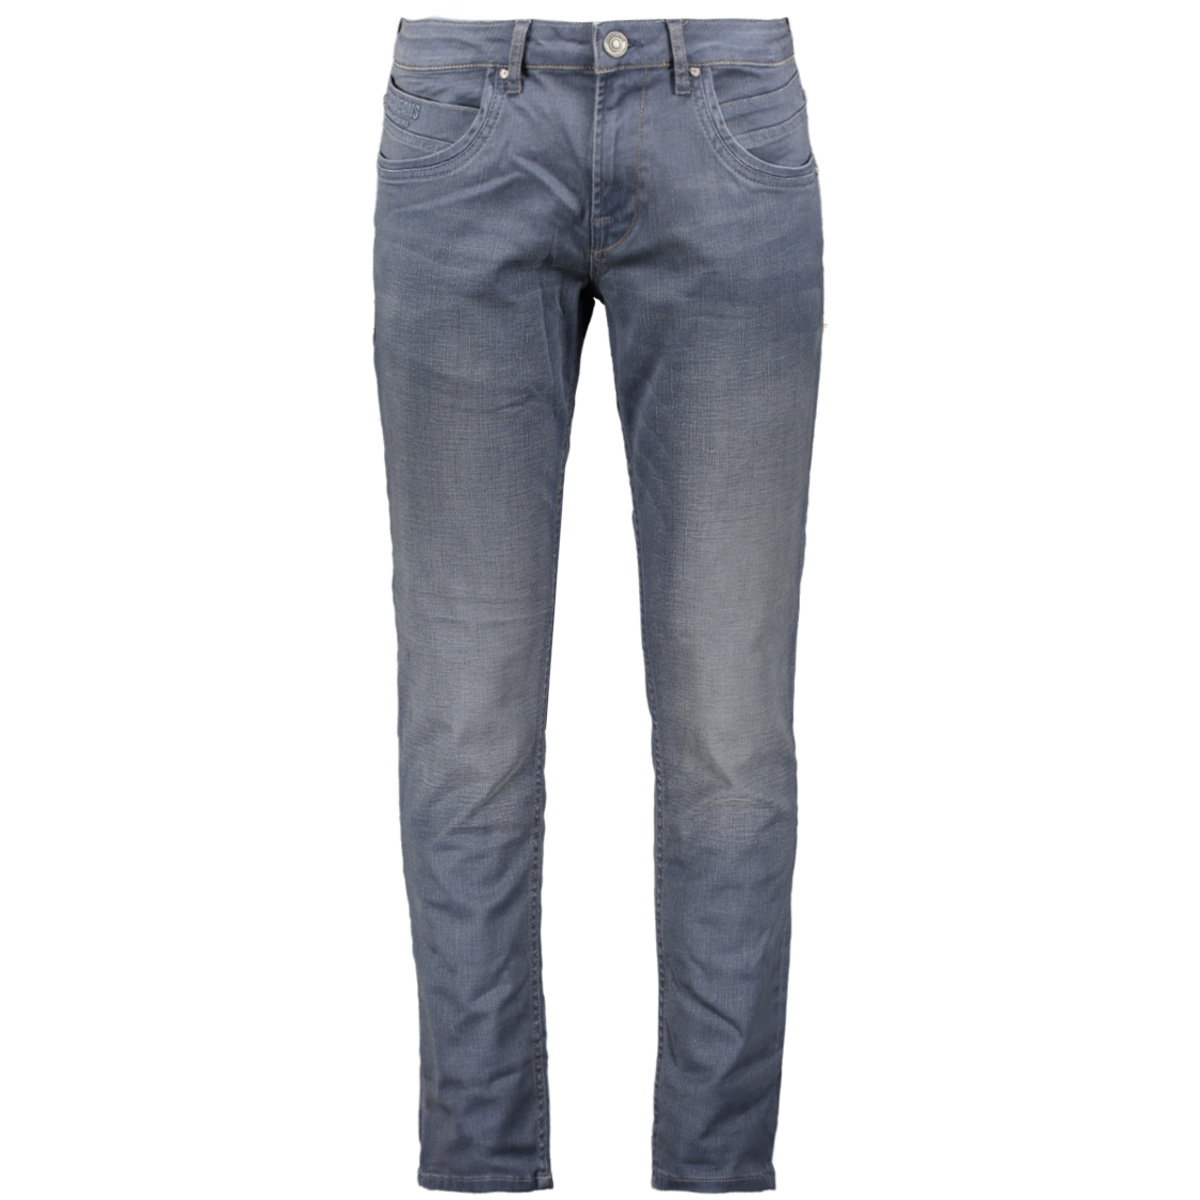 7673885 cars jeans grey blue